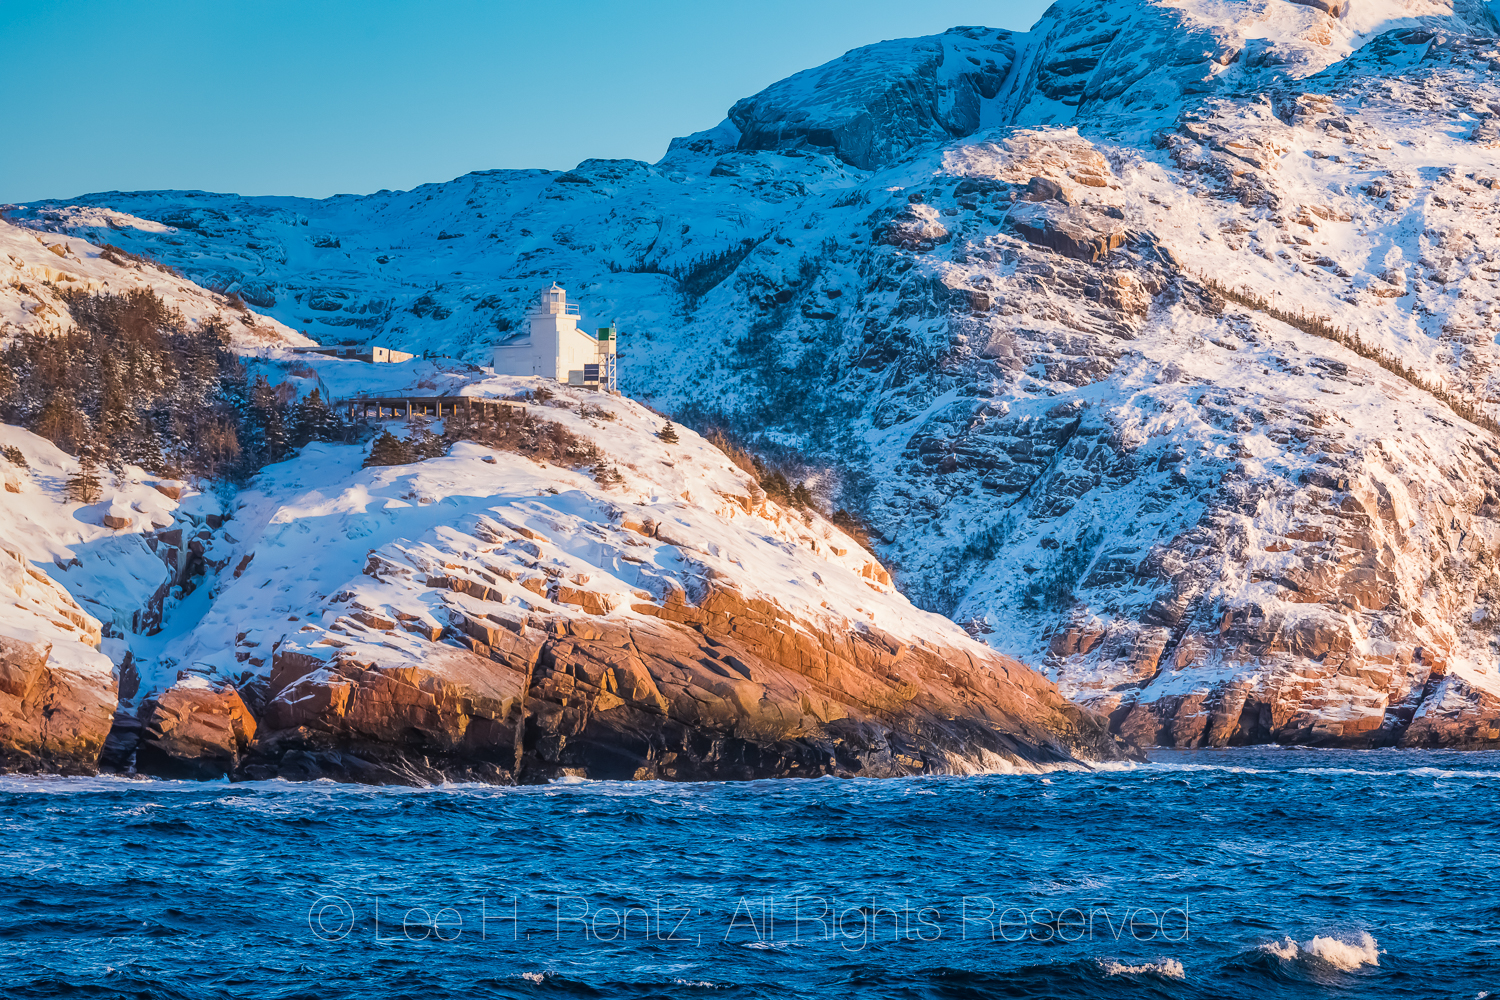 West Point Light Tower at Mouth of Francois Bay in Newfoundland